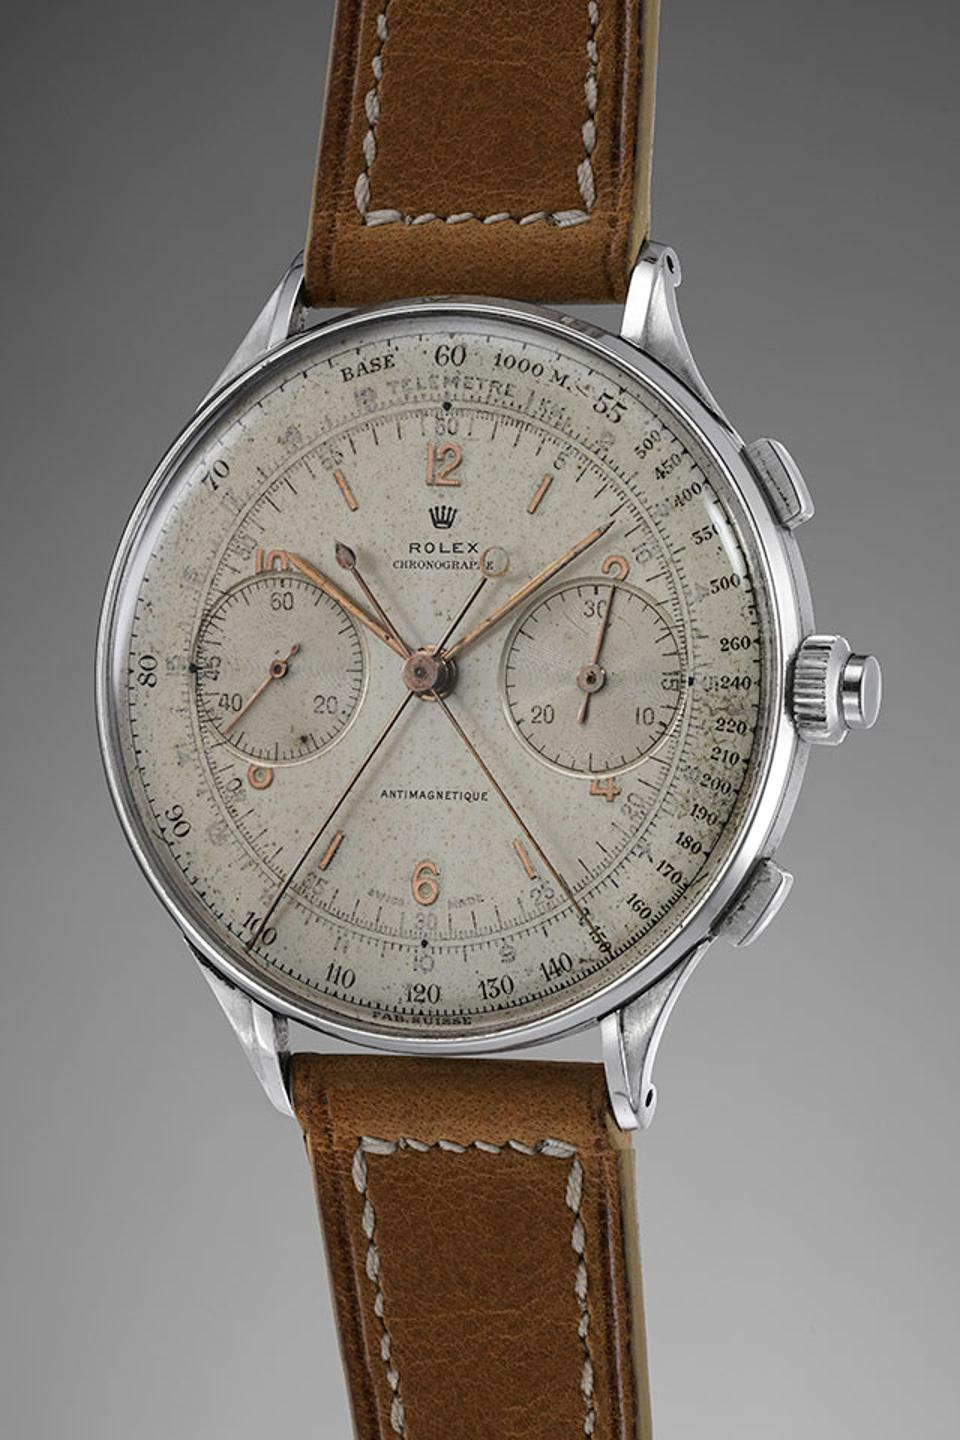 The 1942 Rolex Ref. 4113 split-seconds chronograph is being sold by Phillips for CHF 1.5-3-million.